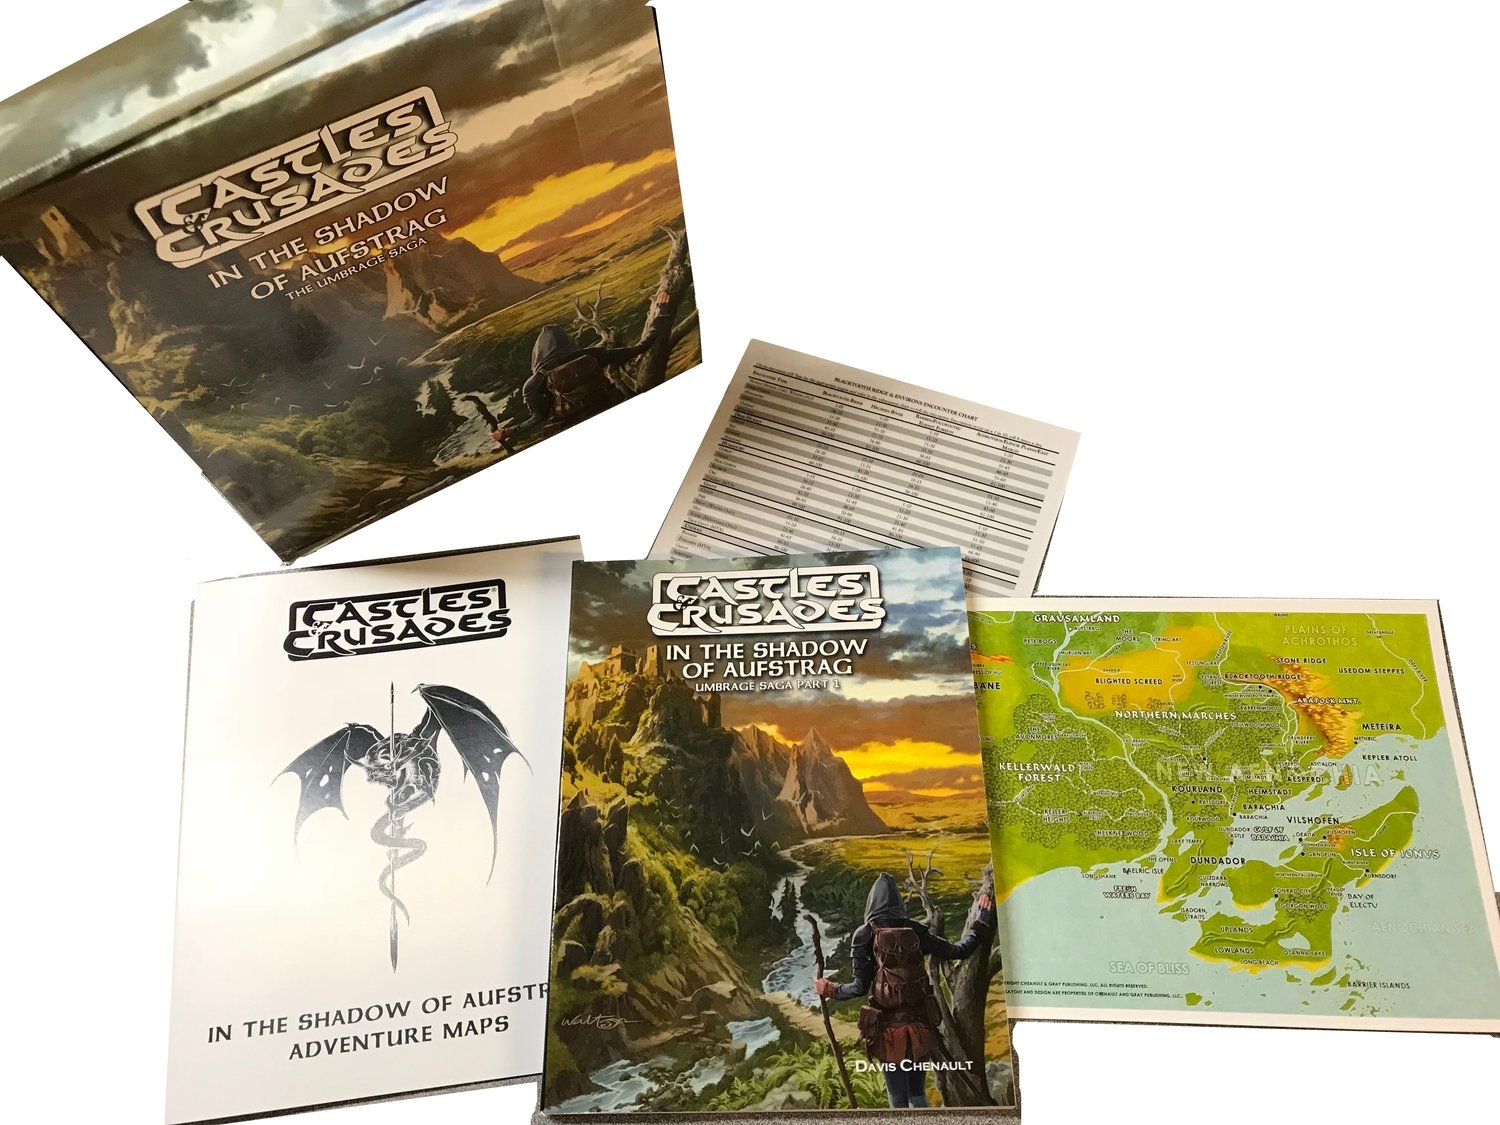 Castles & Crusades: A0-A5 In the Shadow of Aufstrag (Boxed Set)